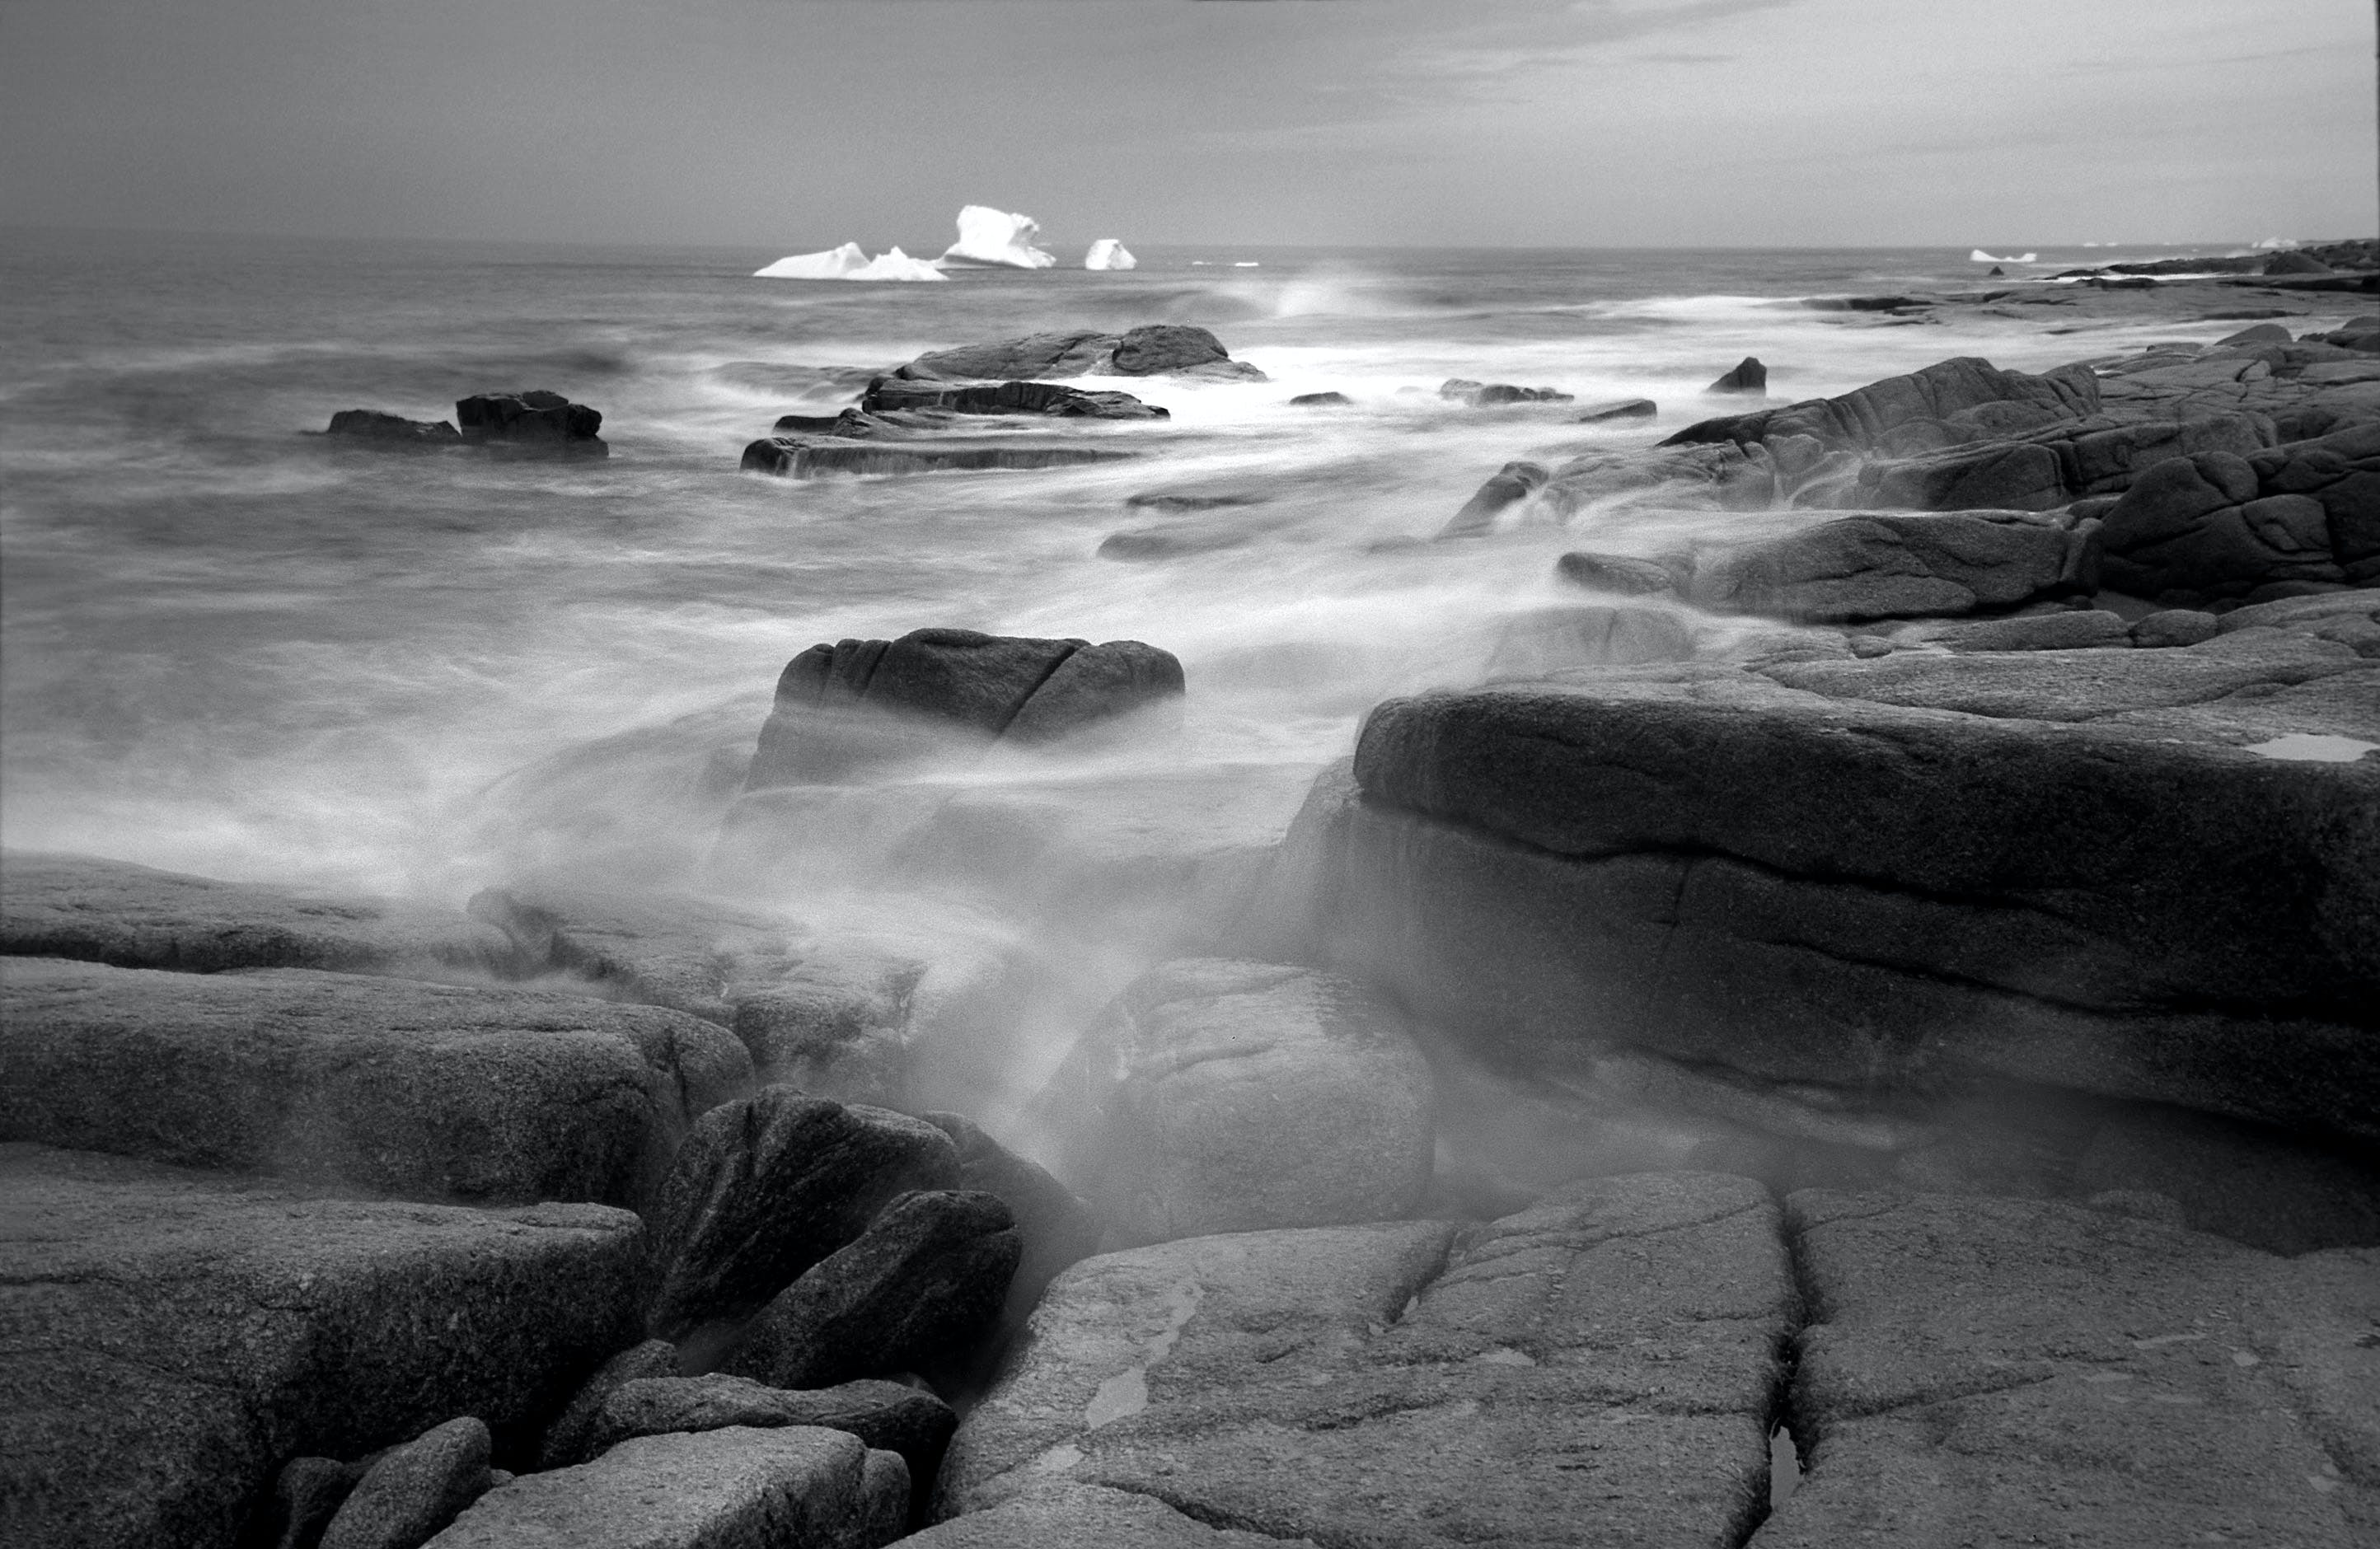 Grayscale Photography of Seashore